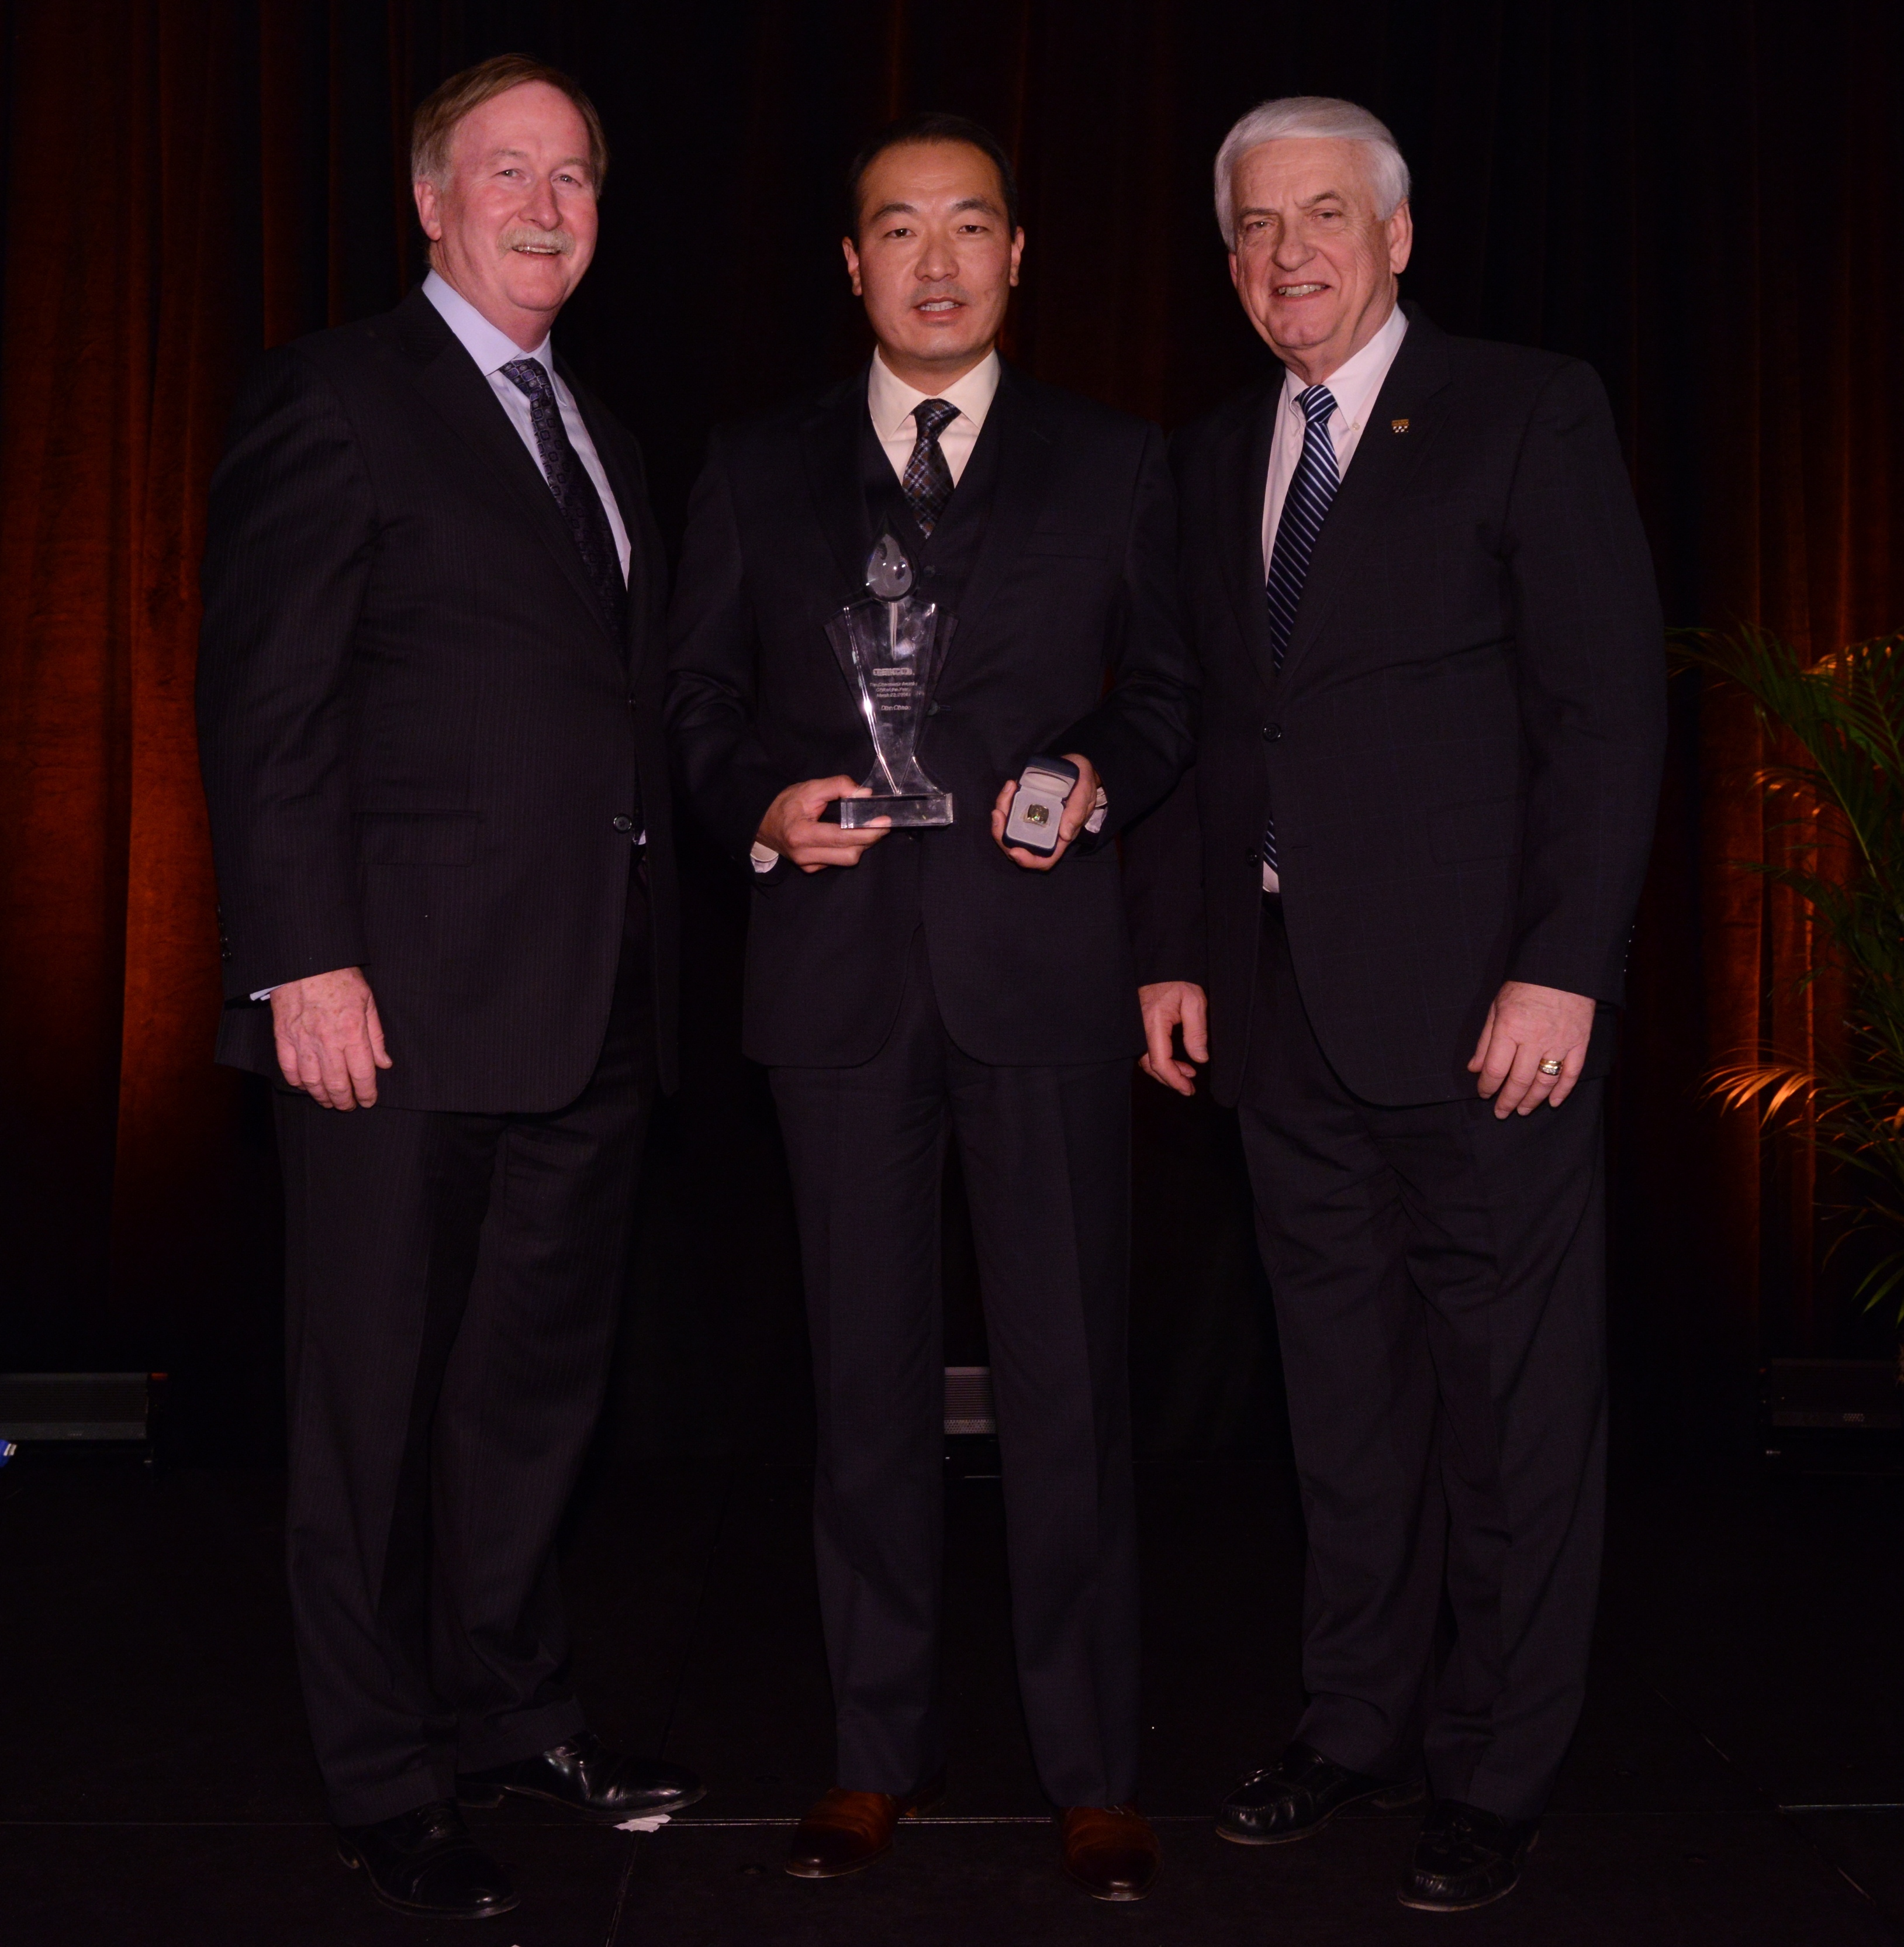 Danny Chao is congratulated by GEICO president and COO Bill Roberts (left) and GEICO Chairman and CEO Tony Nicely for being named GEICO field representative of the year. (Photo: Business Wire)